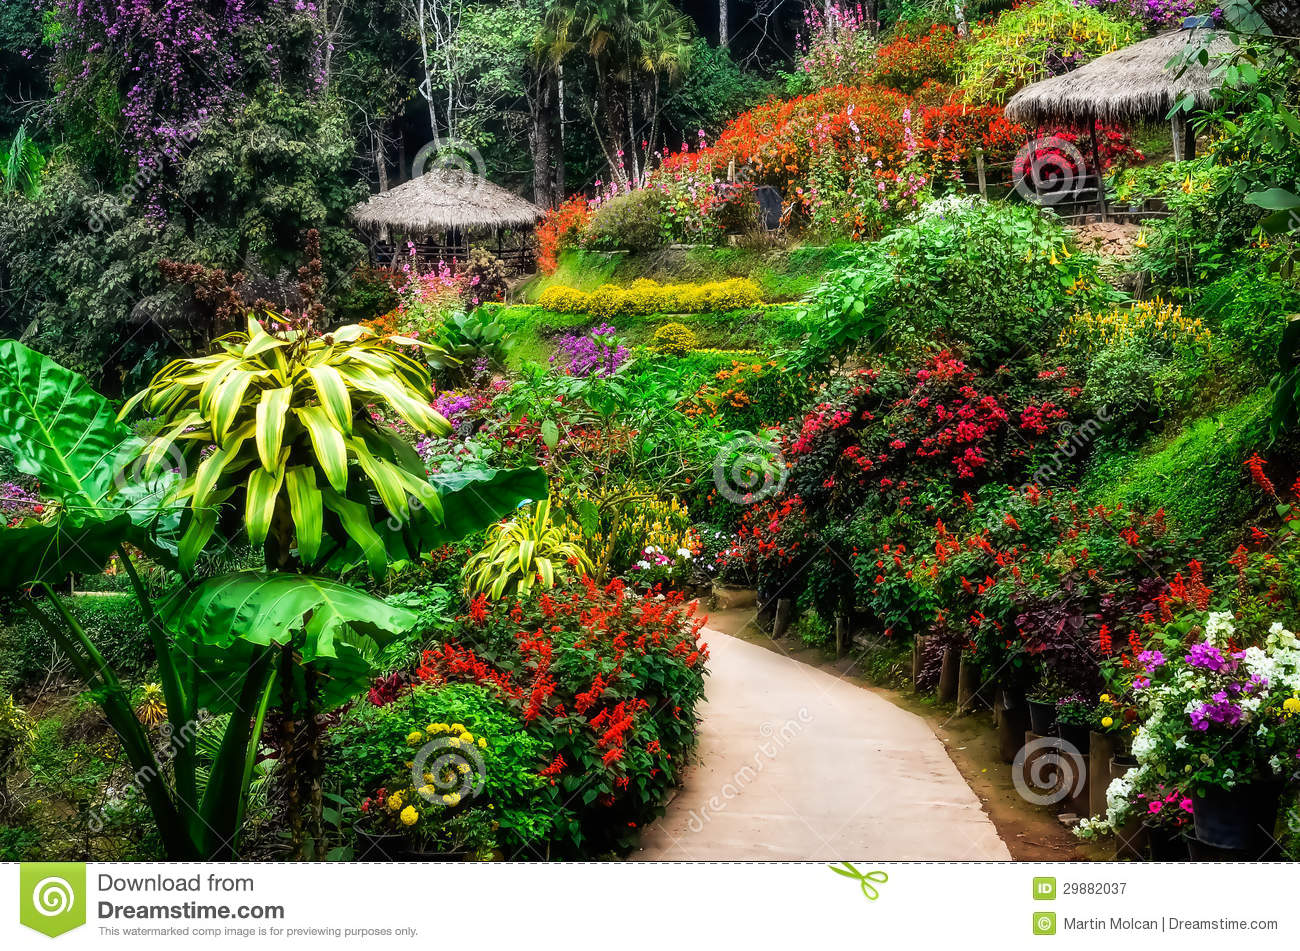 Landscaped Colorful And Peaceful Flower Garden In Blossom